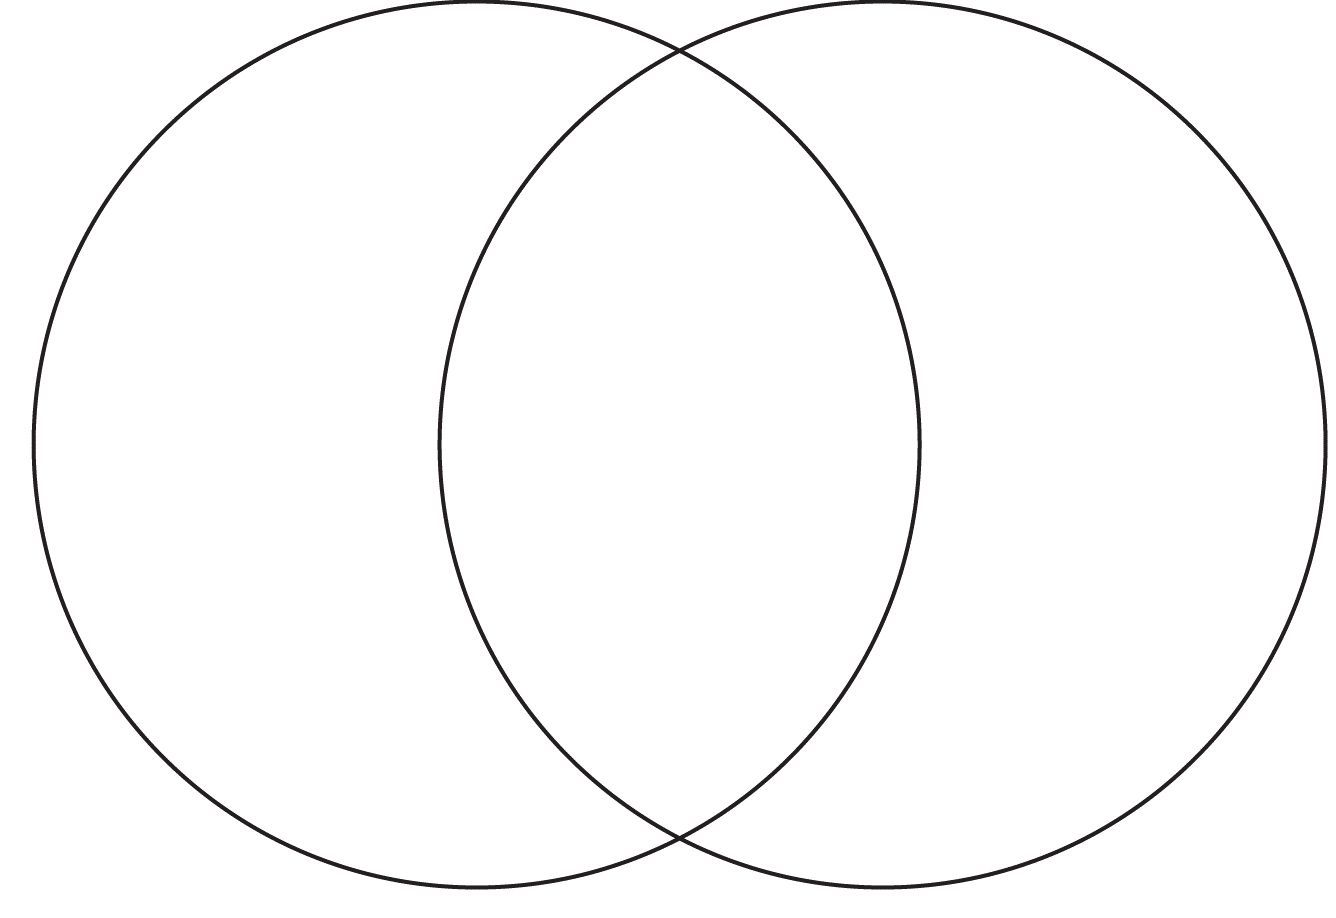 Gratifying image pertaining to blank venn diagram printable